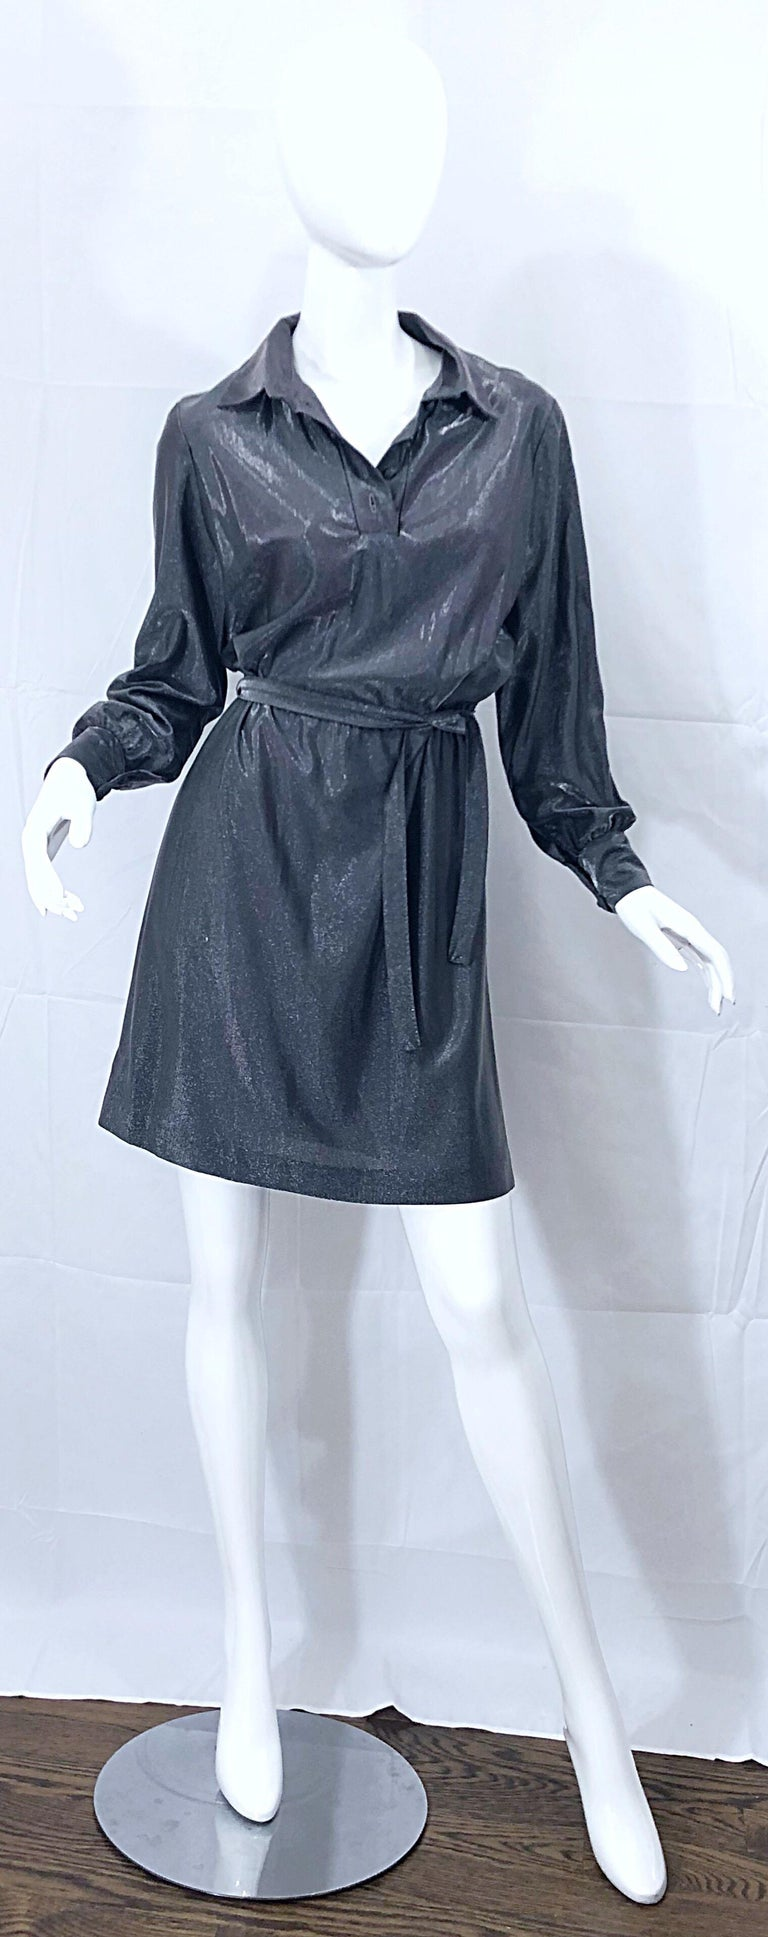 Wonderful 1970s gunmetal metallic long sleeve belted shirt dress! Features a loose fitting bodice that is both comfortable and flattering. Buttons up at neck and at each sleeve cuff. Built in interior elastic waistband stretches to fit an array of